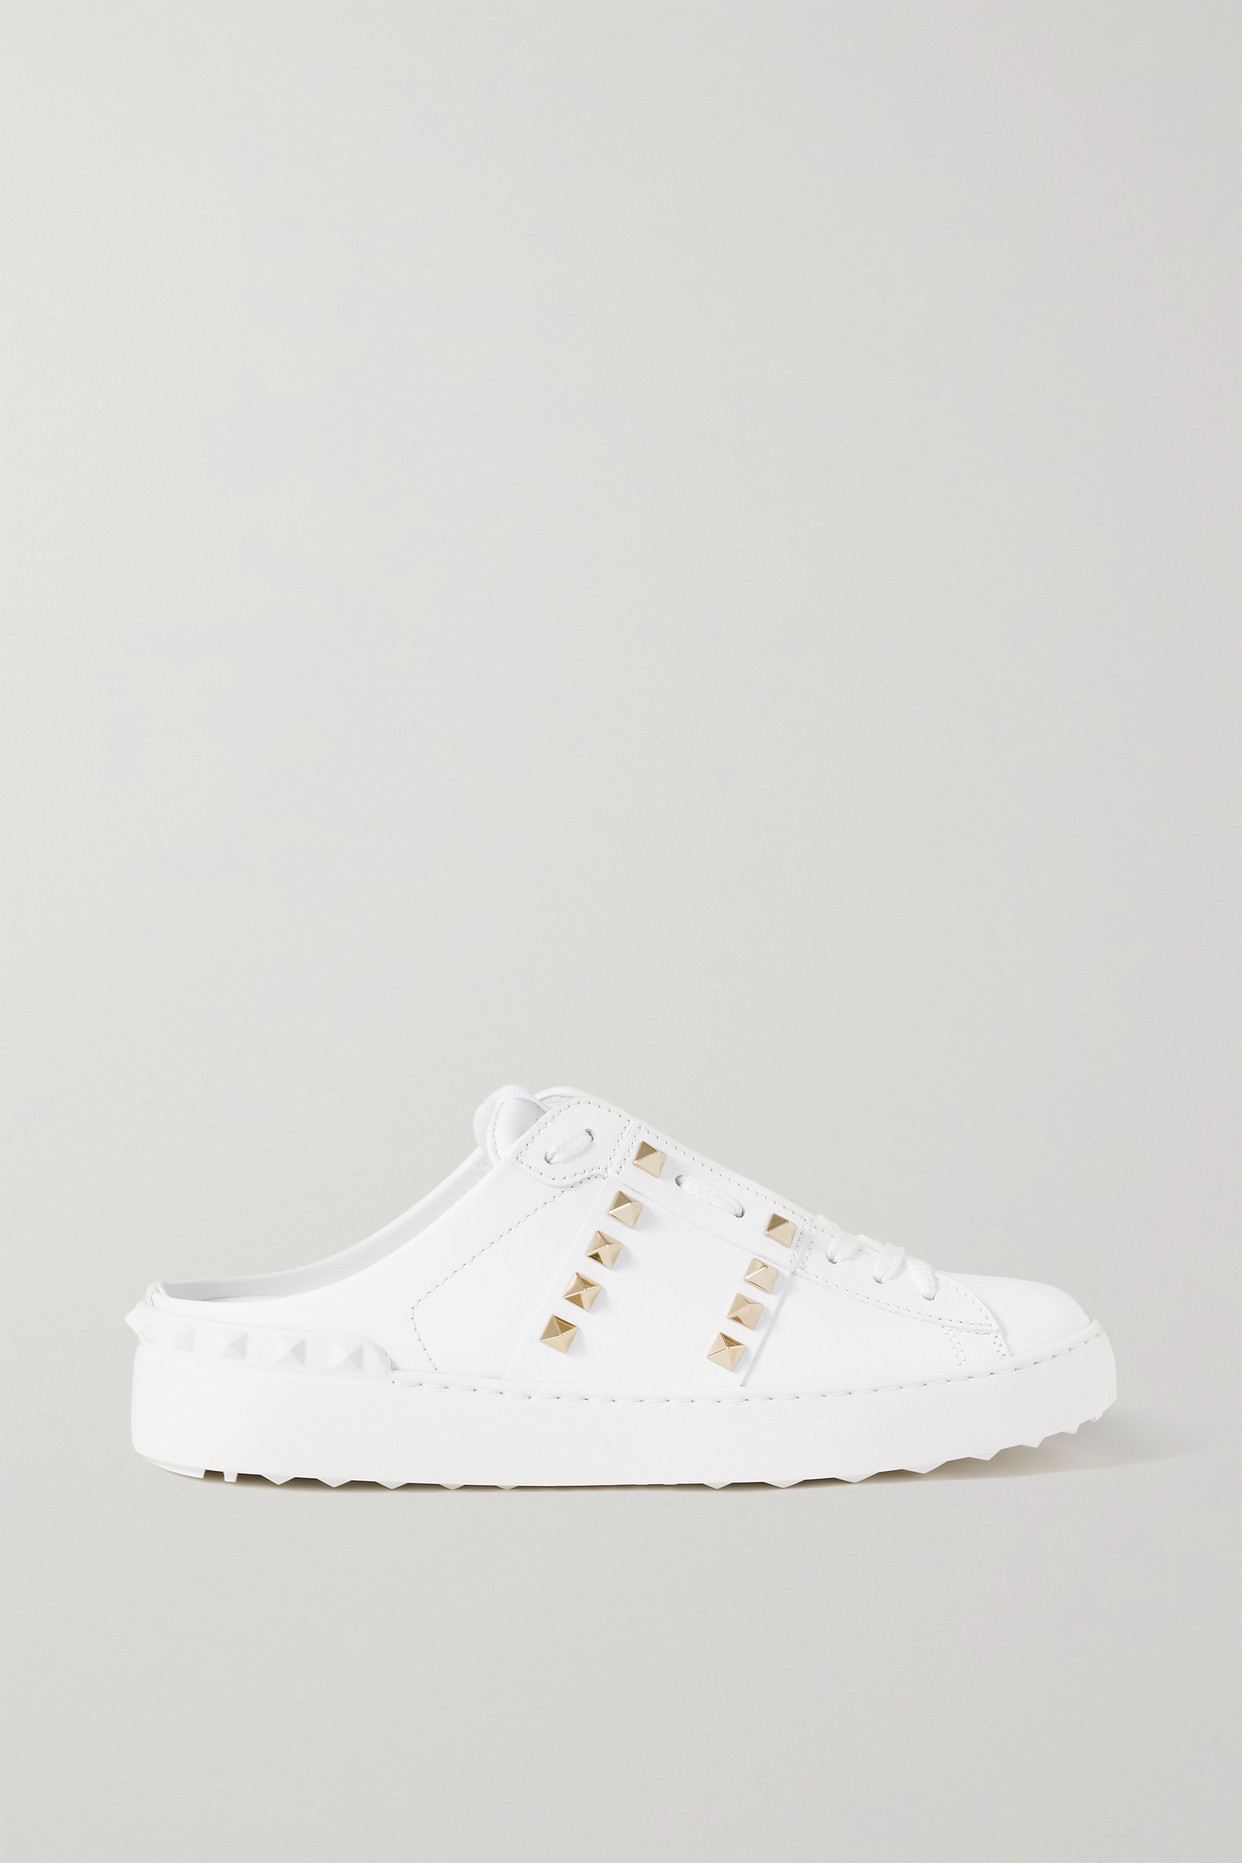 VALENTINO - Valentino Garavani Rockstud Leather Slip-on Sneakers - White - IT36